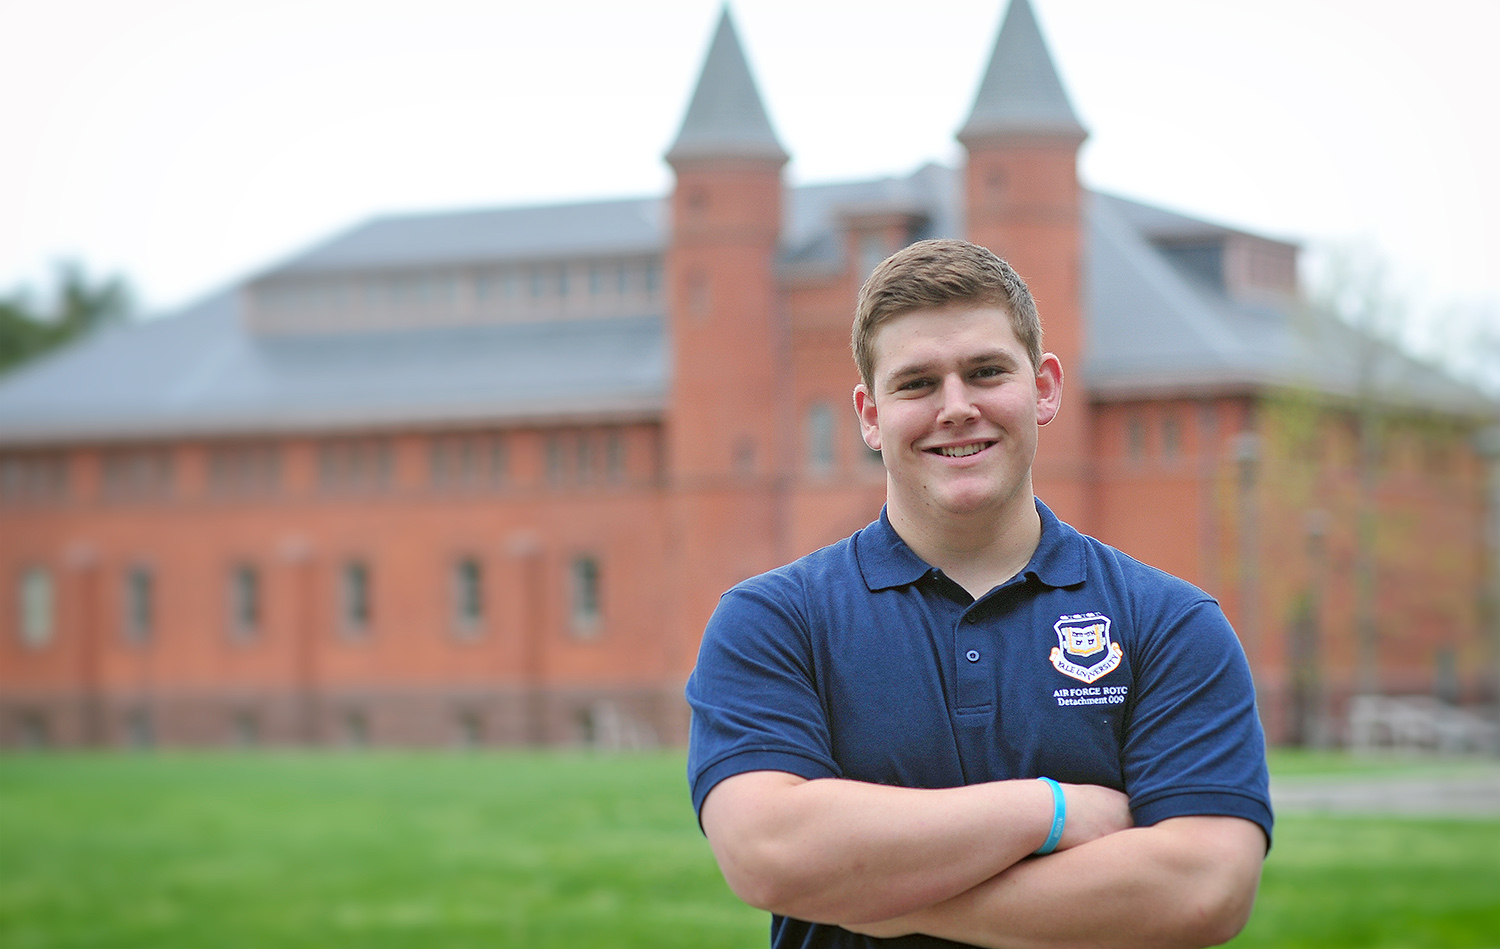 Dalton Garver '20 participates in the Air Force Reserve Officer Training Corps (ROTC) at Yale University.